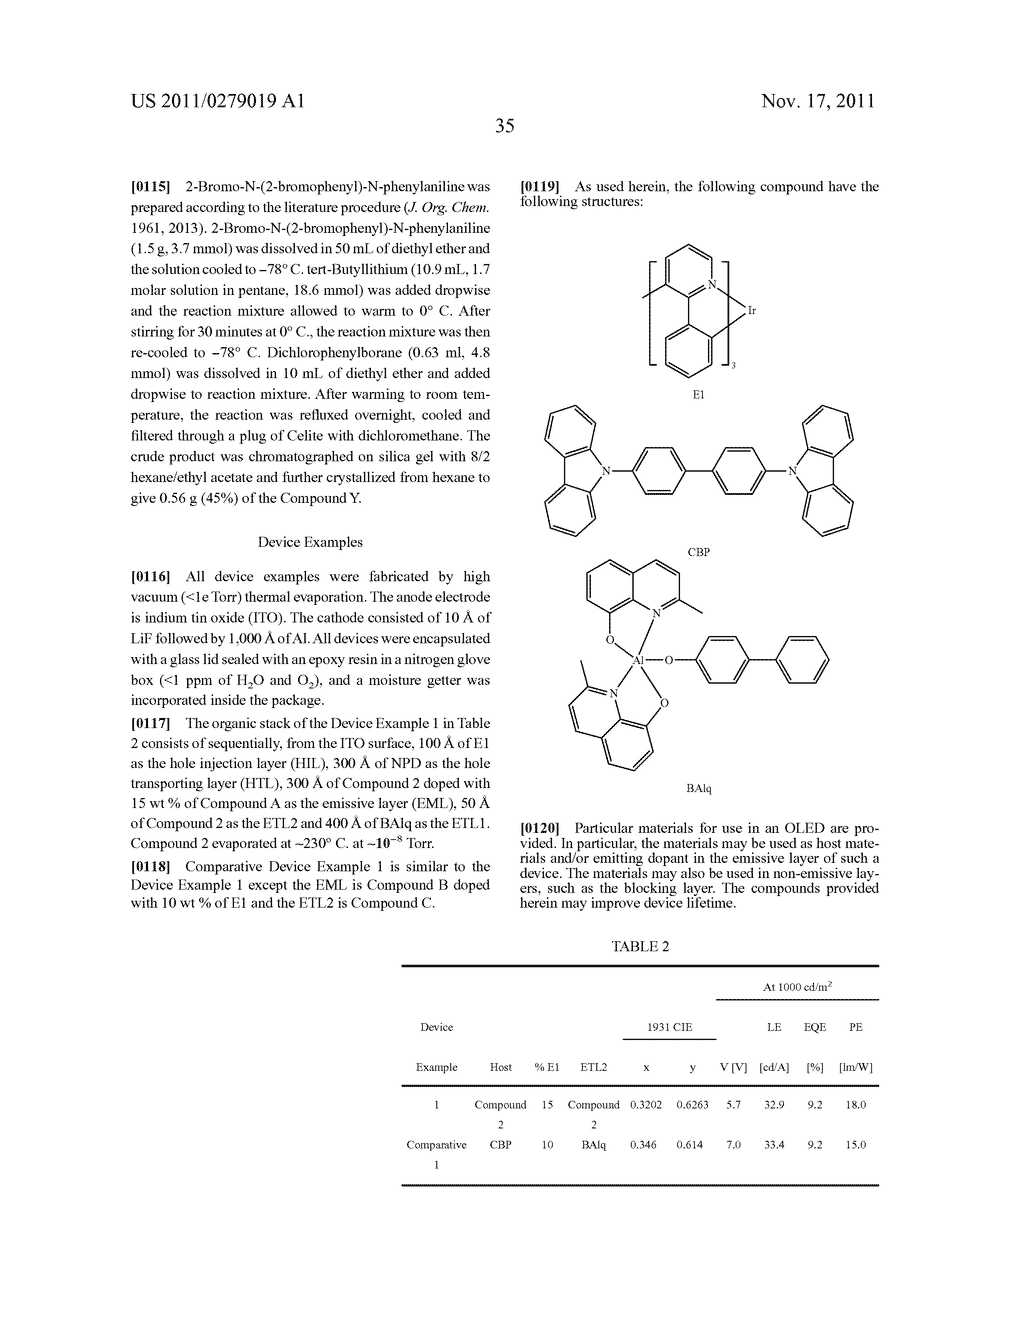 AZABORININE COMPOUNDS AS HOST MATERIALS AND DOPANTS FOR PHOLEDS - diagram, schematic, and image 42